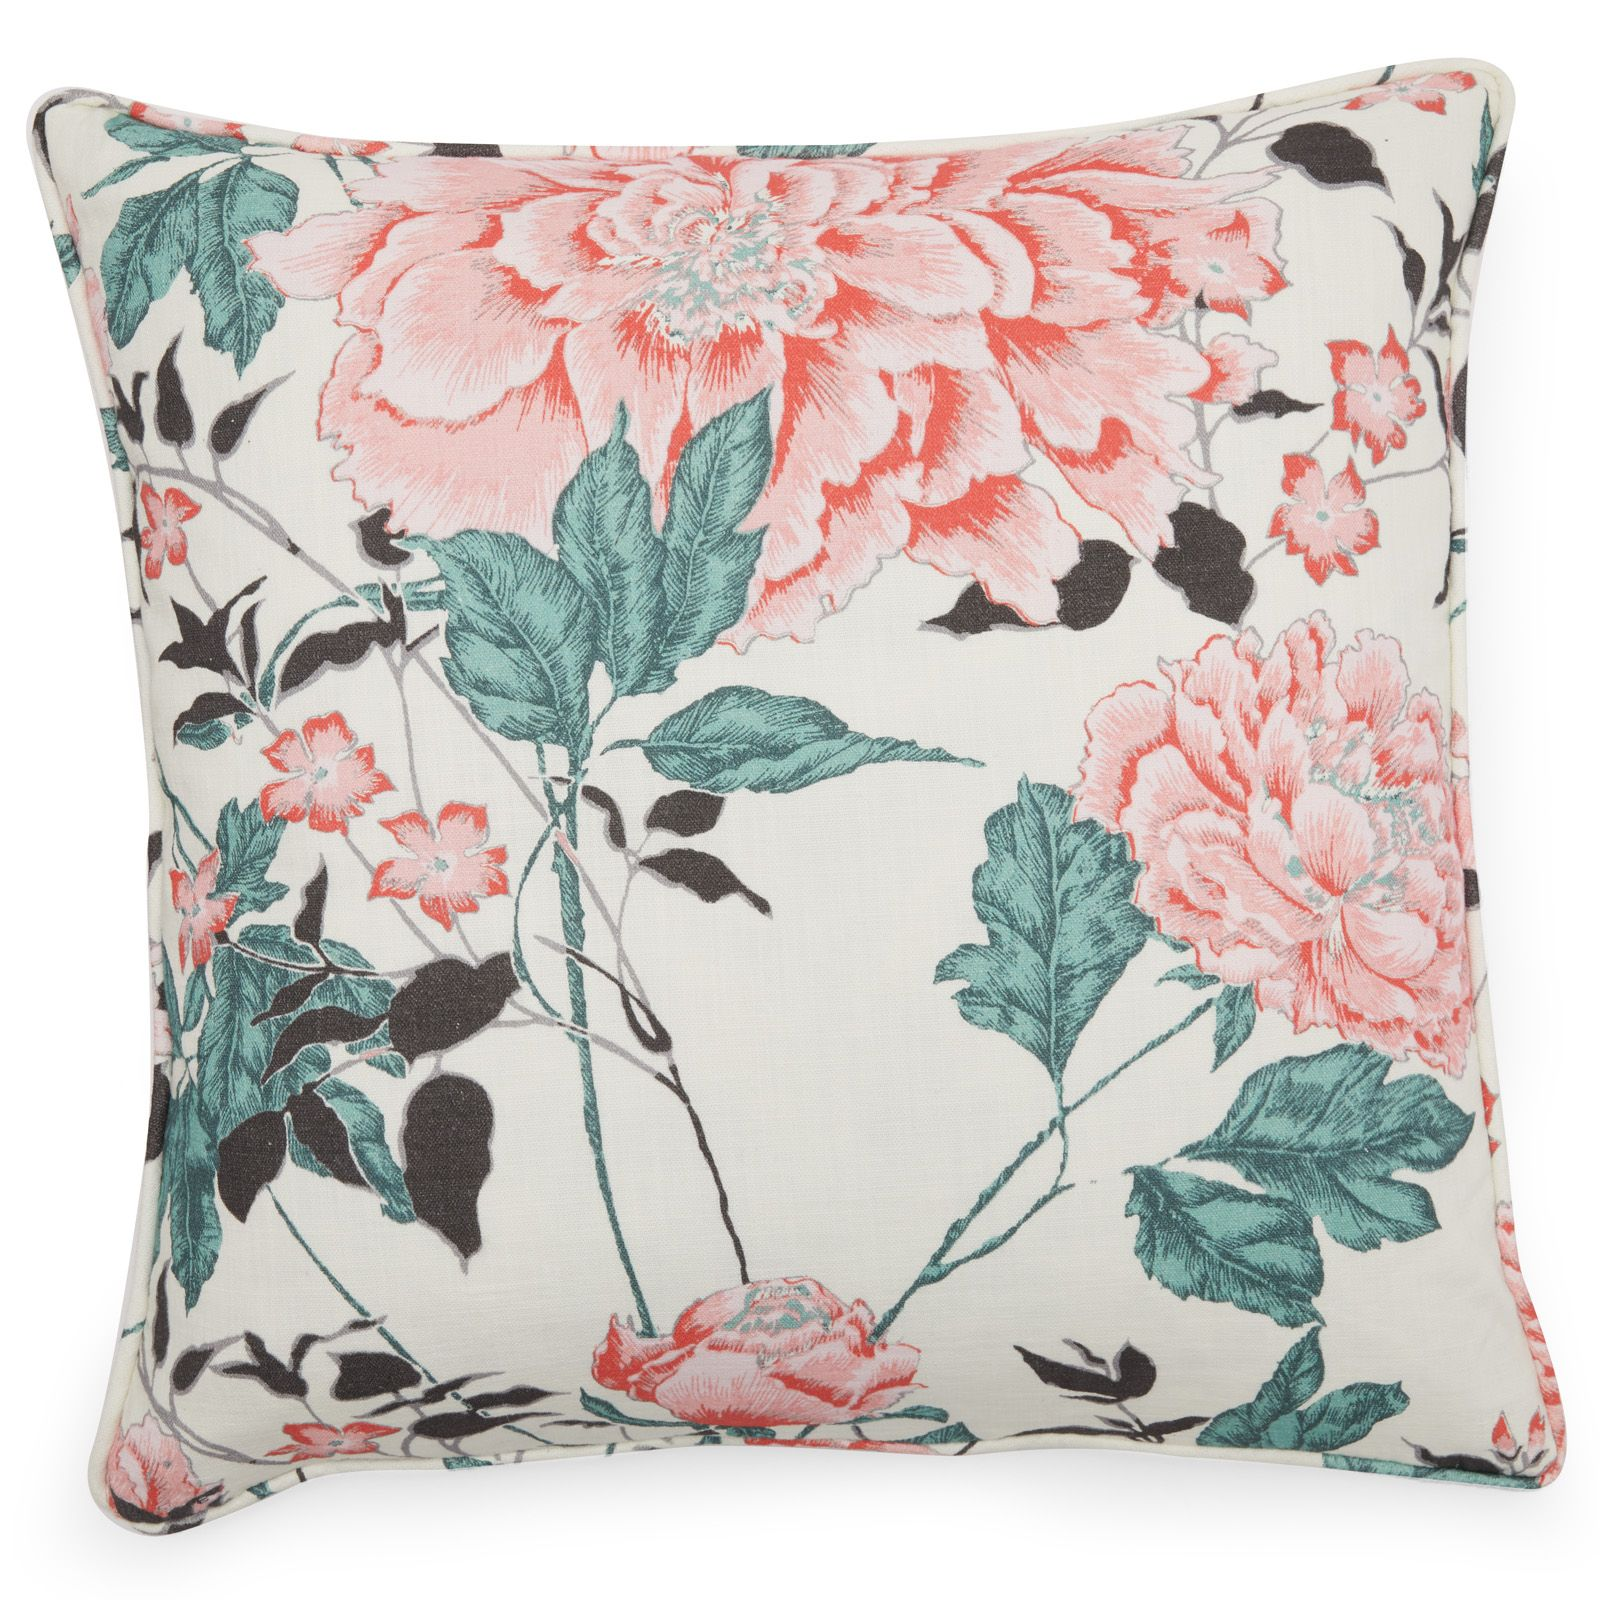 Home In 2020 Decorative Throw Pillows Decorative Throws Throw